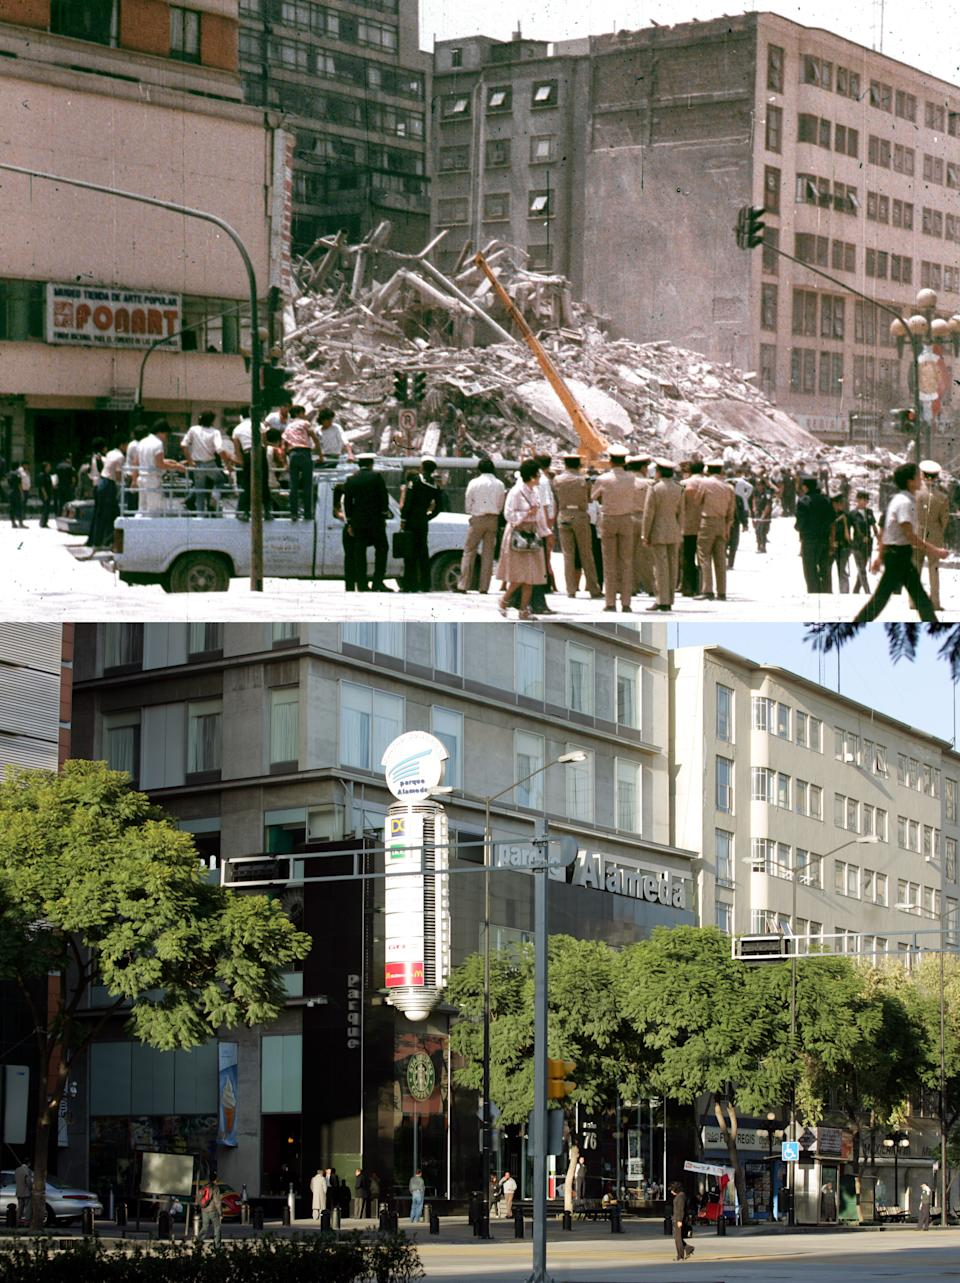 File photo shows a building in Mexico City collapsing during earthquake and same location on September 19, 2005.